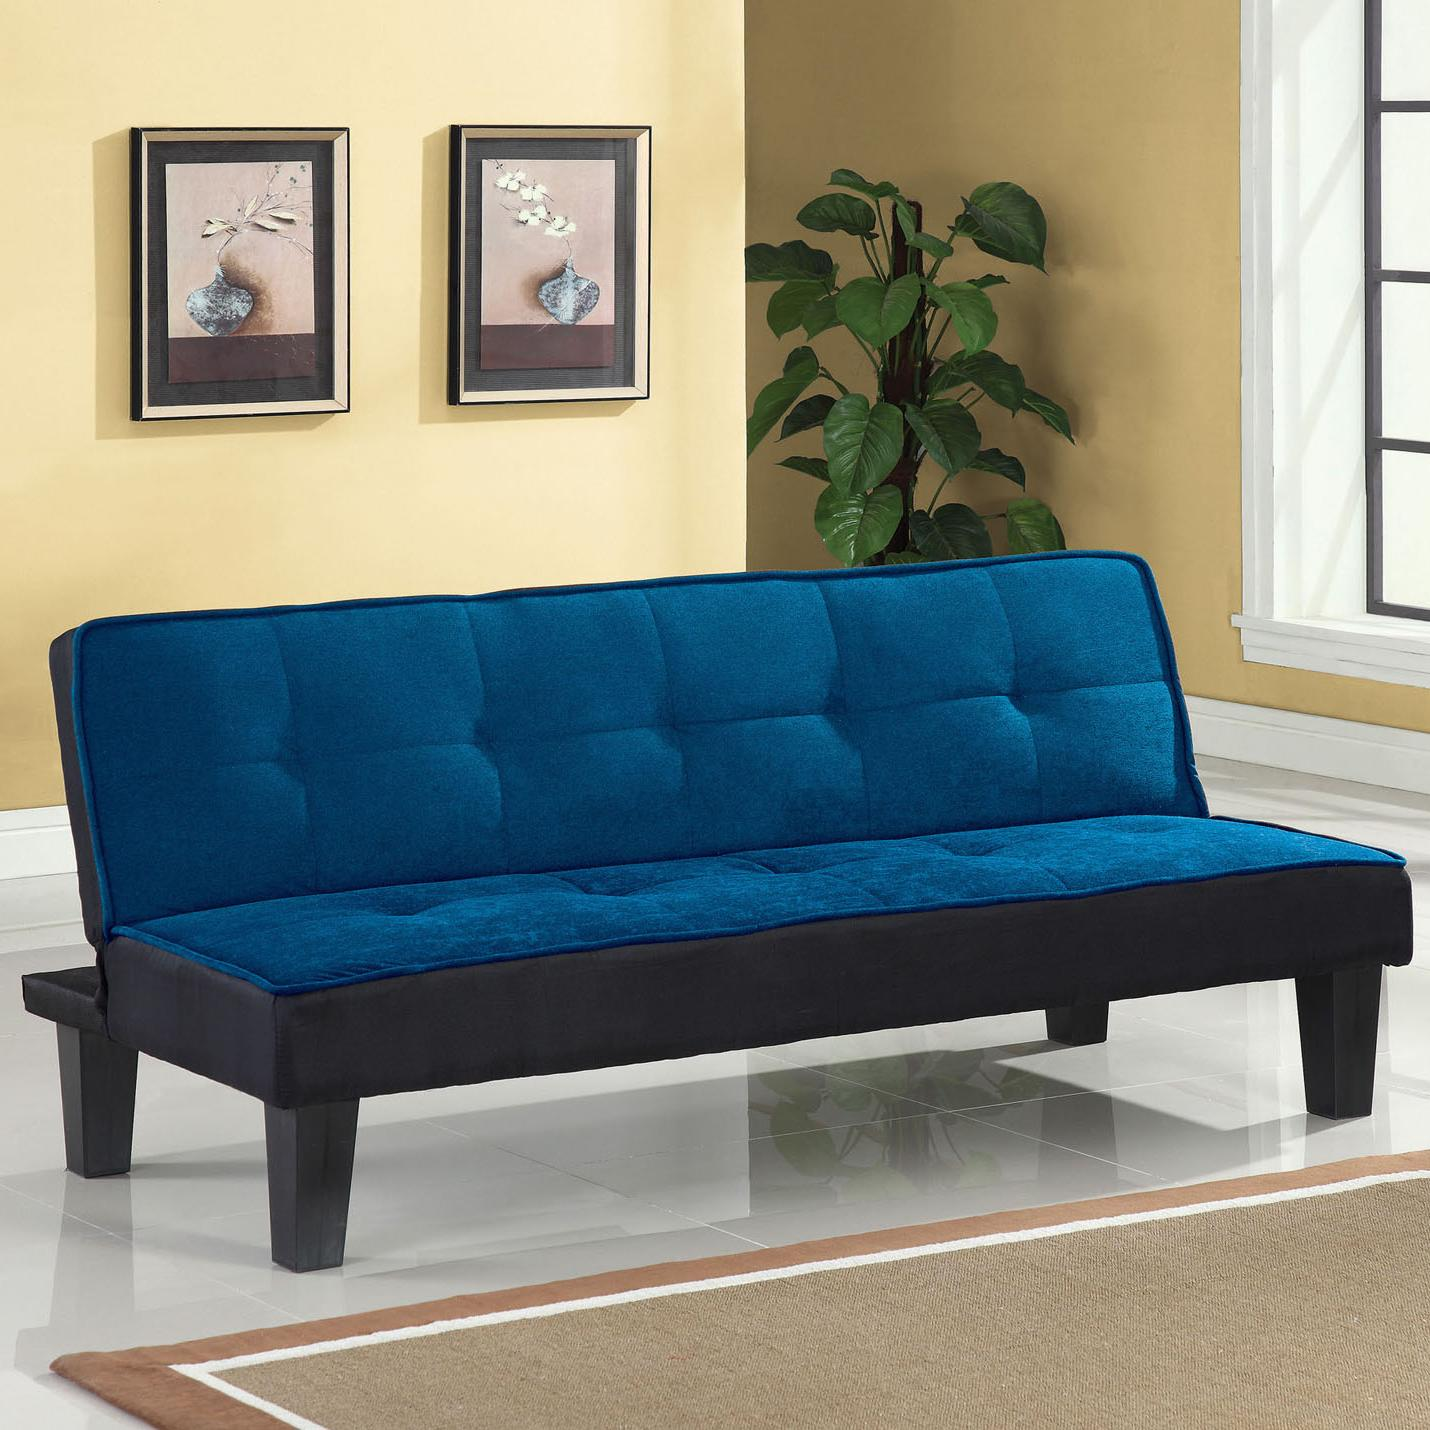 Acme Furniture Hamar  Adjustable Sofa - Item Number: 57031